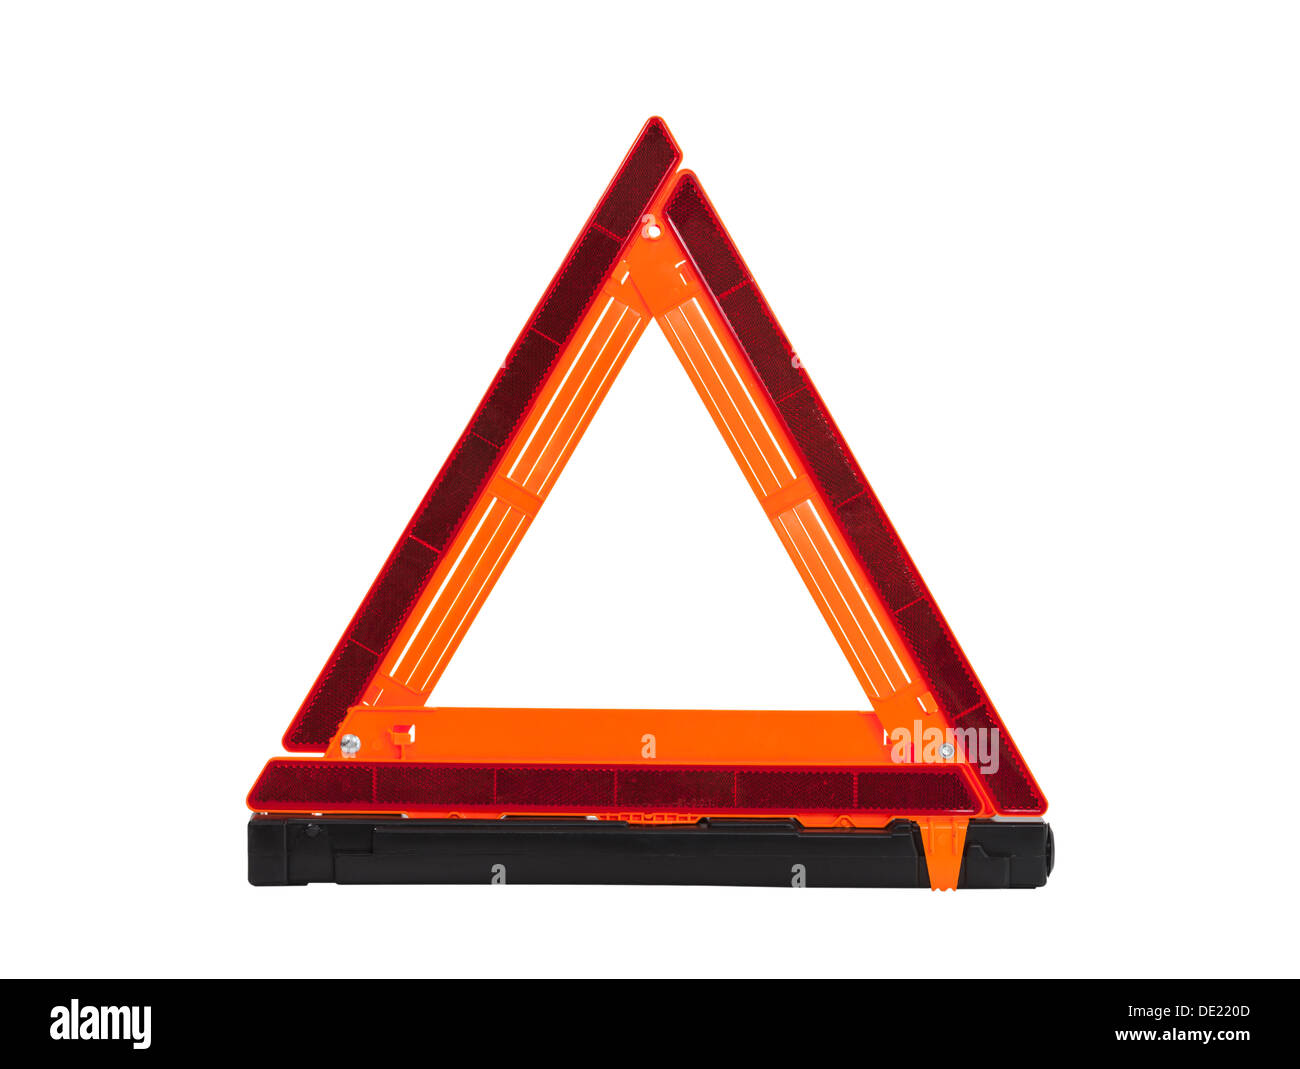 Emergency reflective road triangle isolated with clipping path. - Stock Image